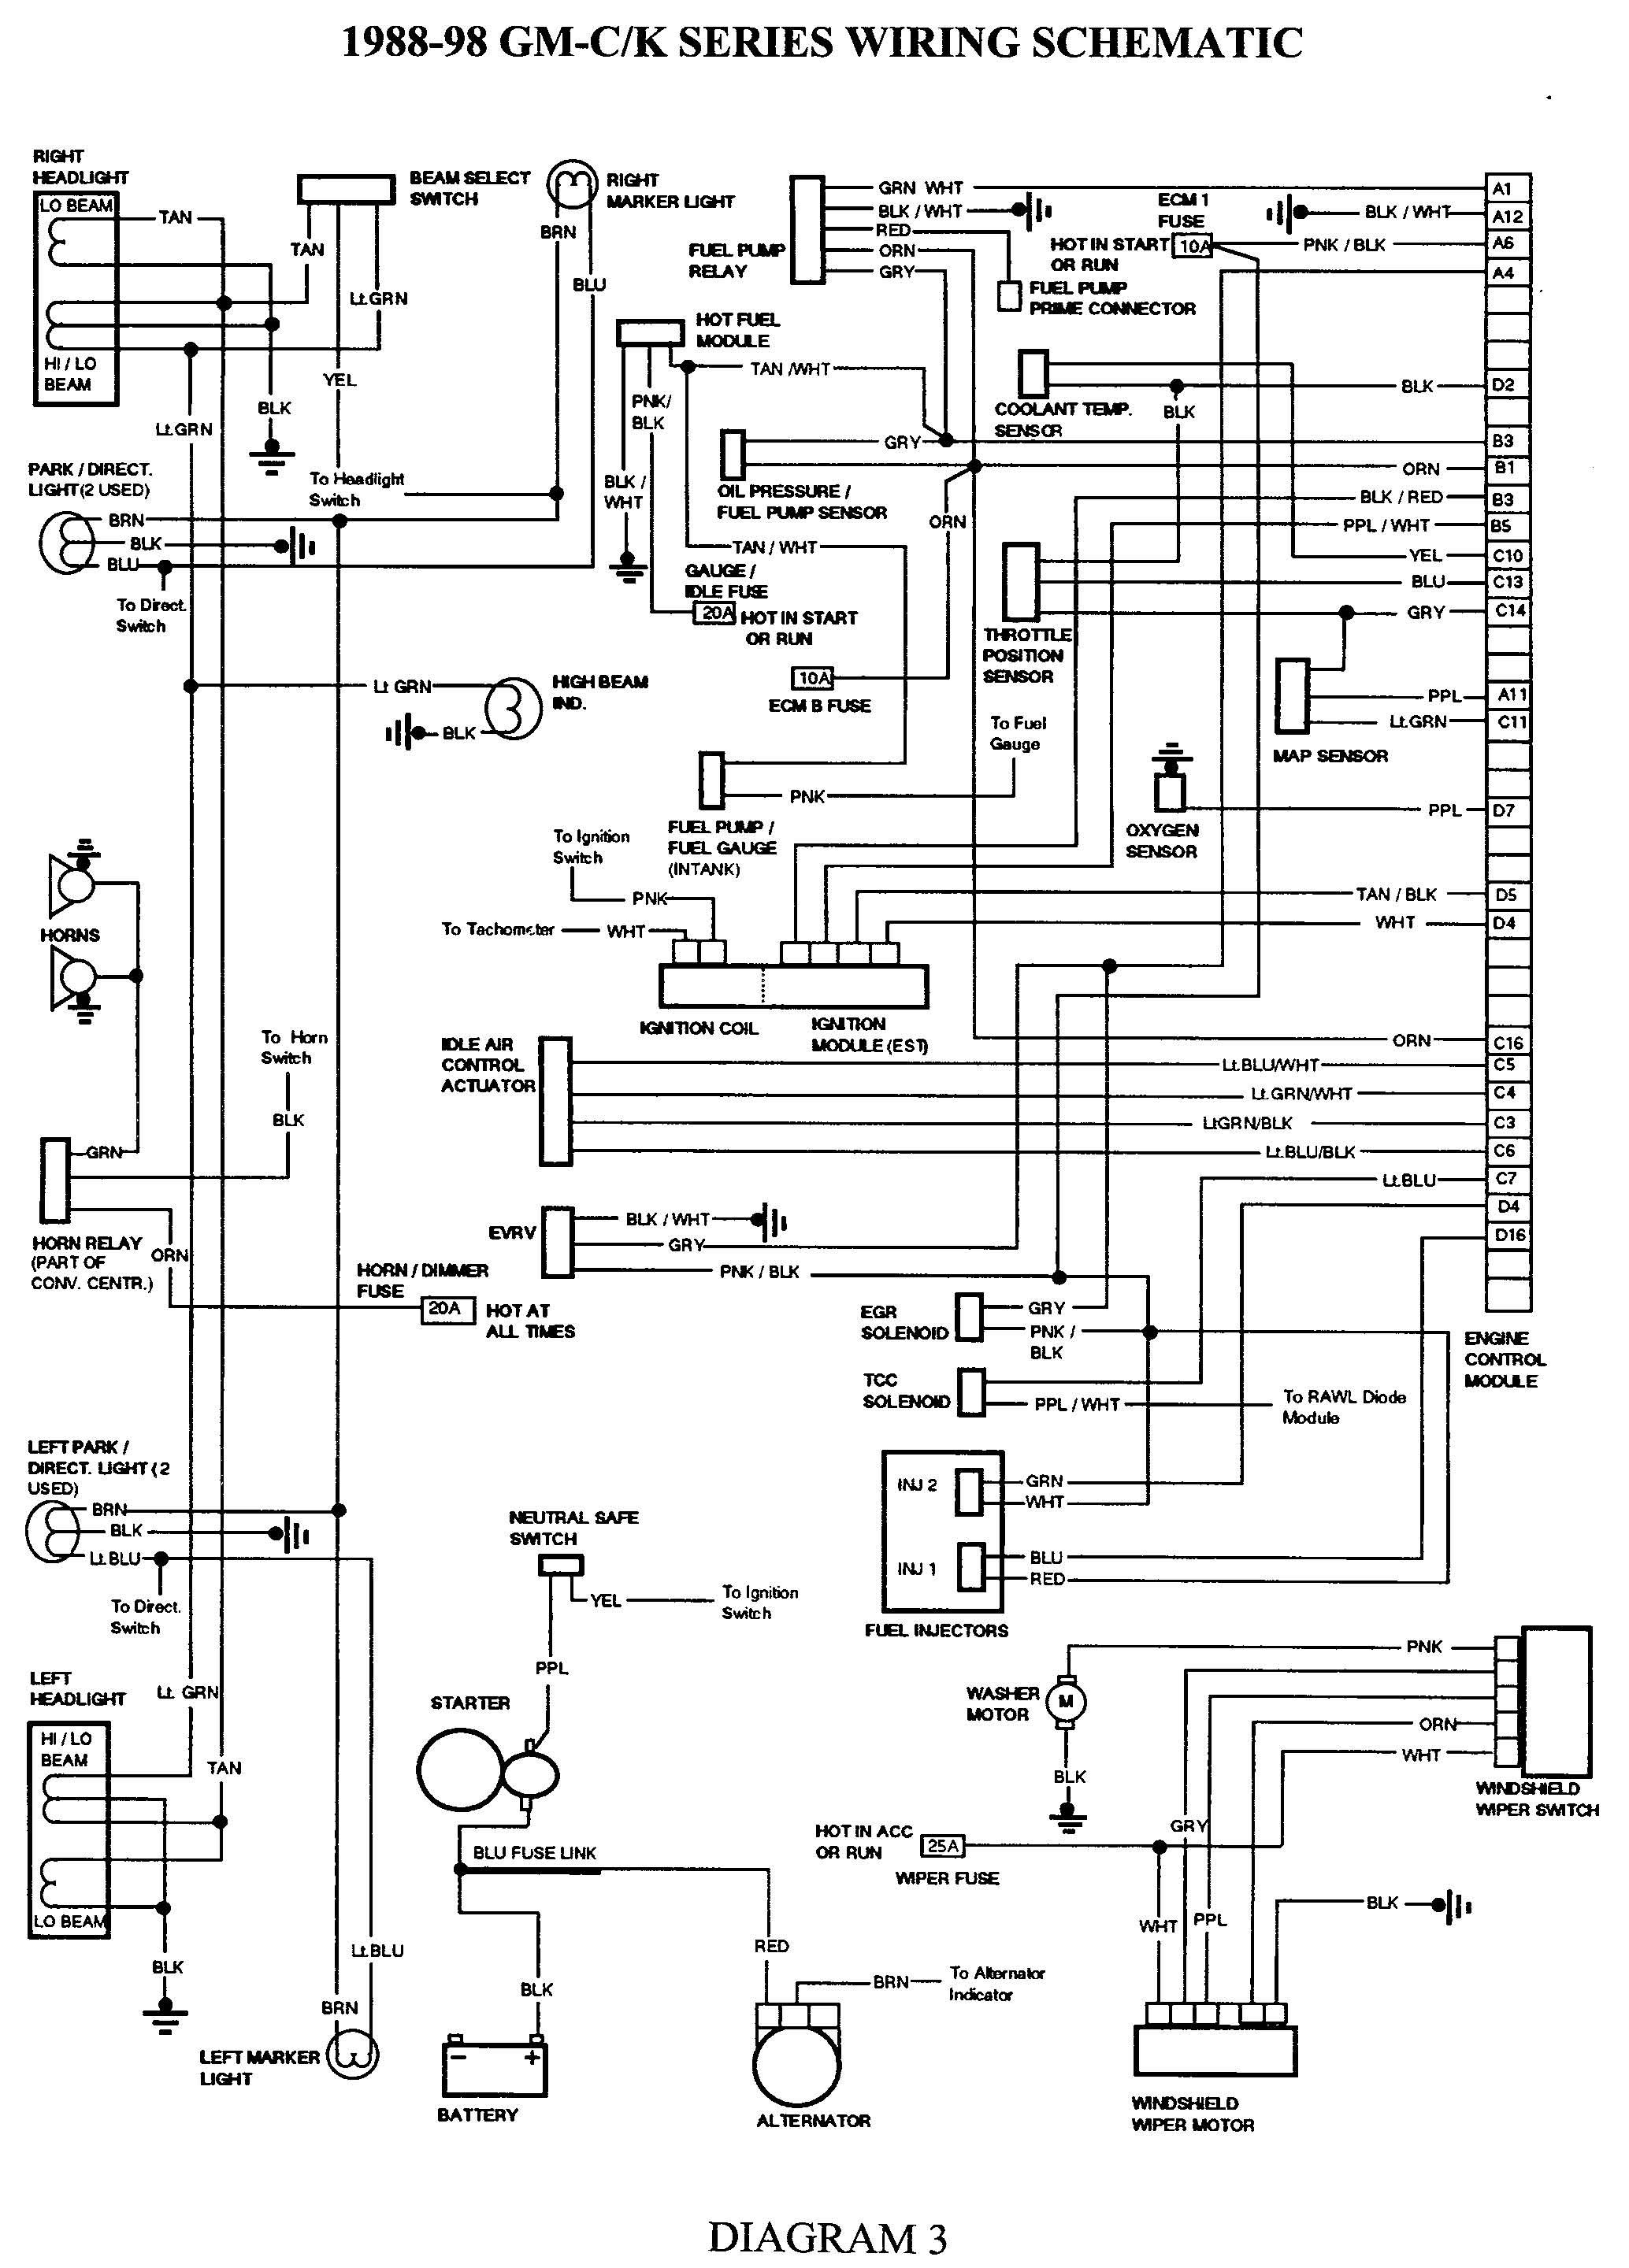 94 Chevy Camaro Wiring Diagram Opinions About 1994 Toyota Camry Radio Schematic Detailed Schematics Rh Keyplusrubber Com 97